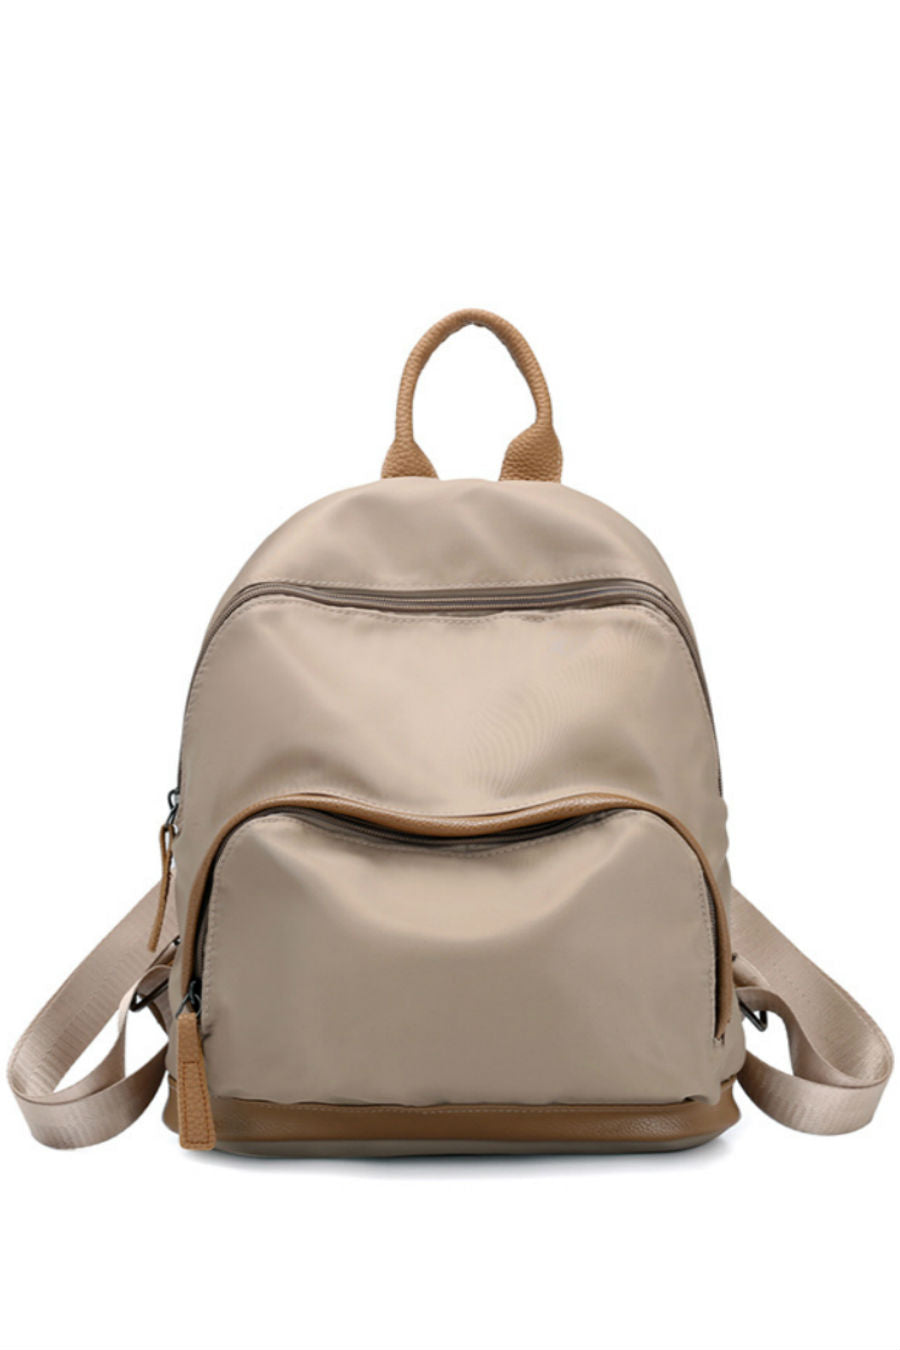 Elegant Beige Nylon Backpack